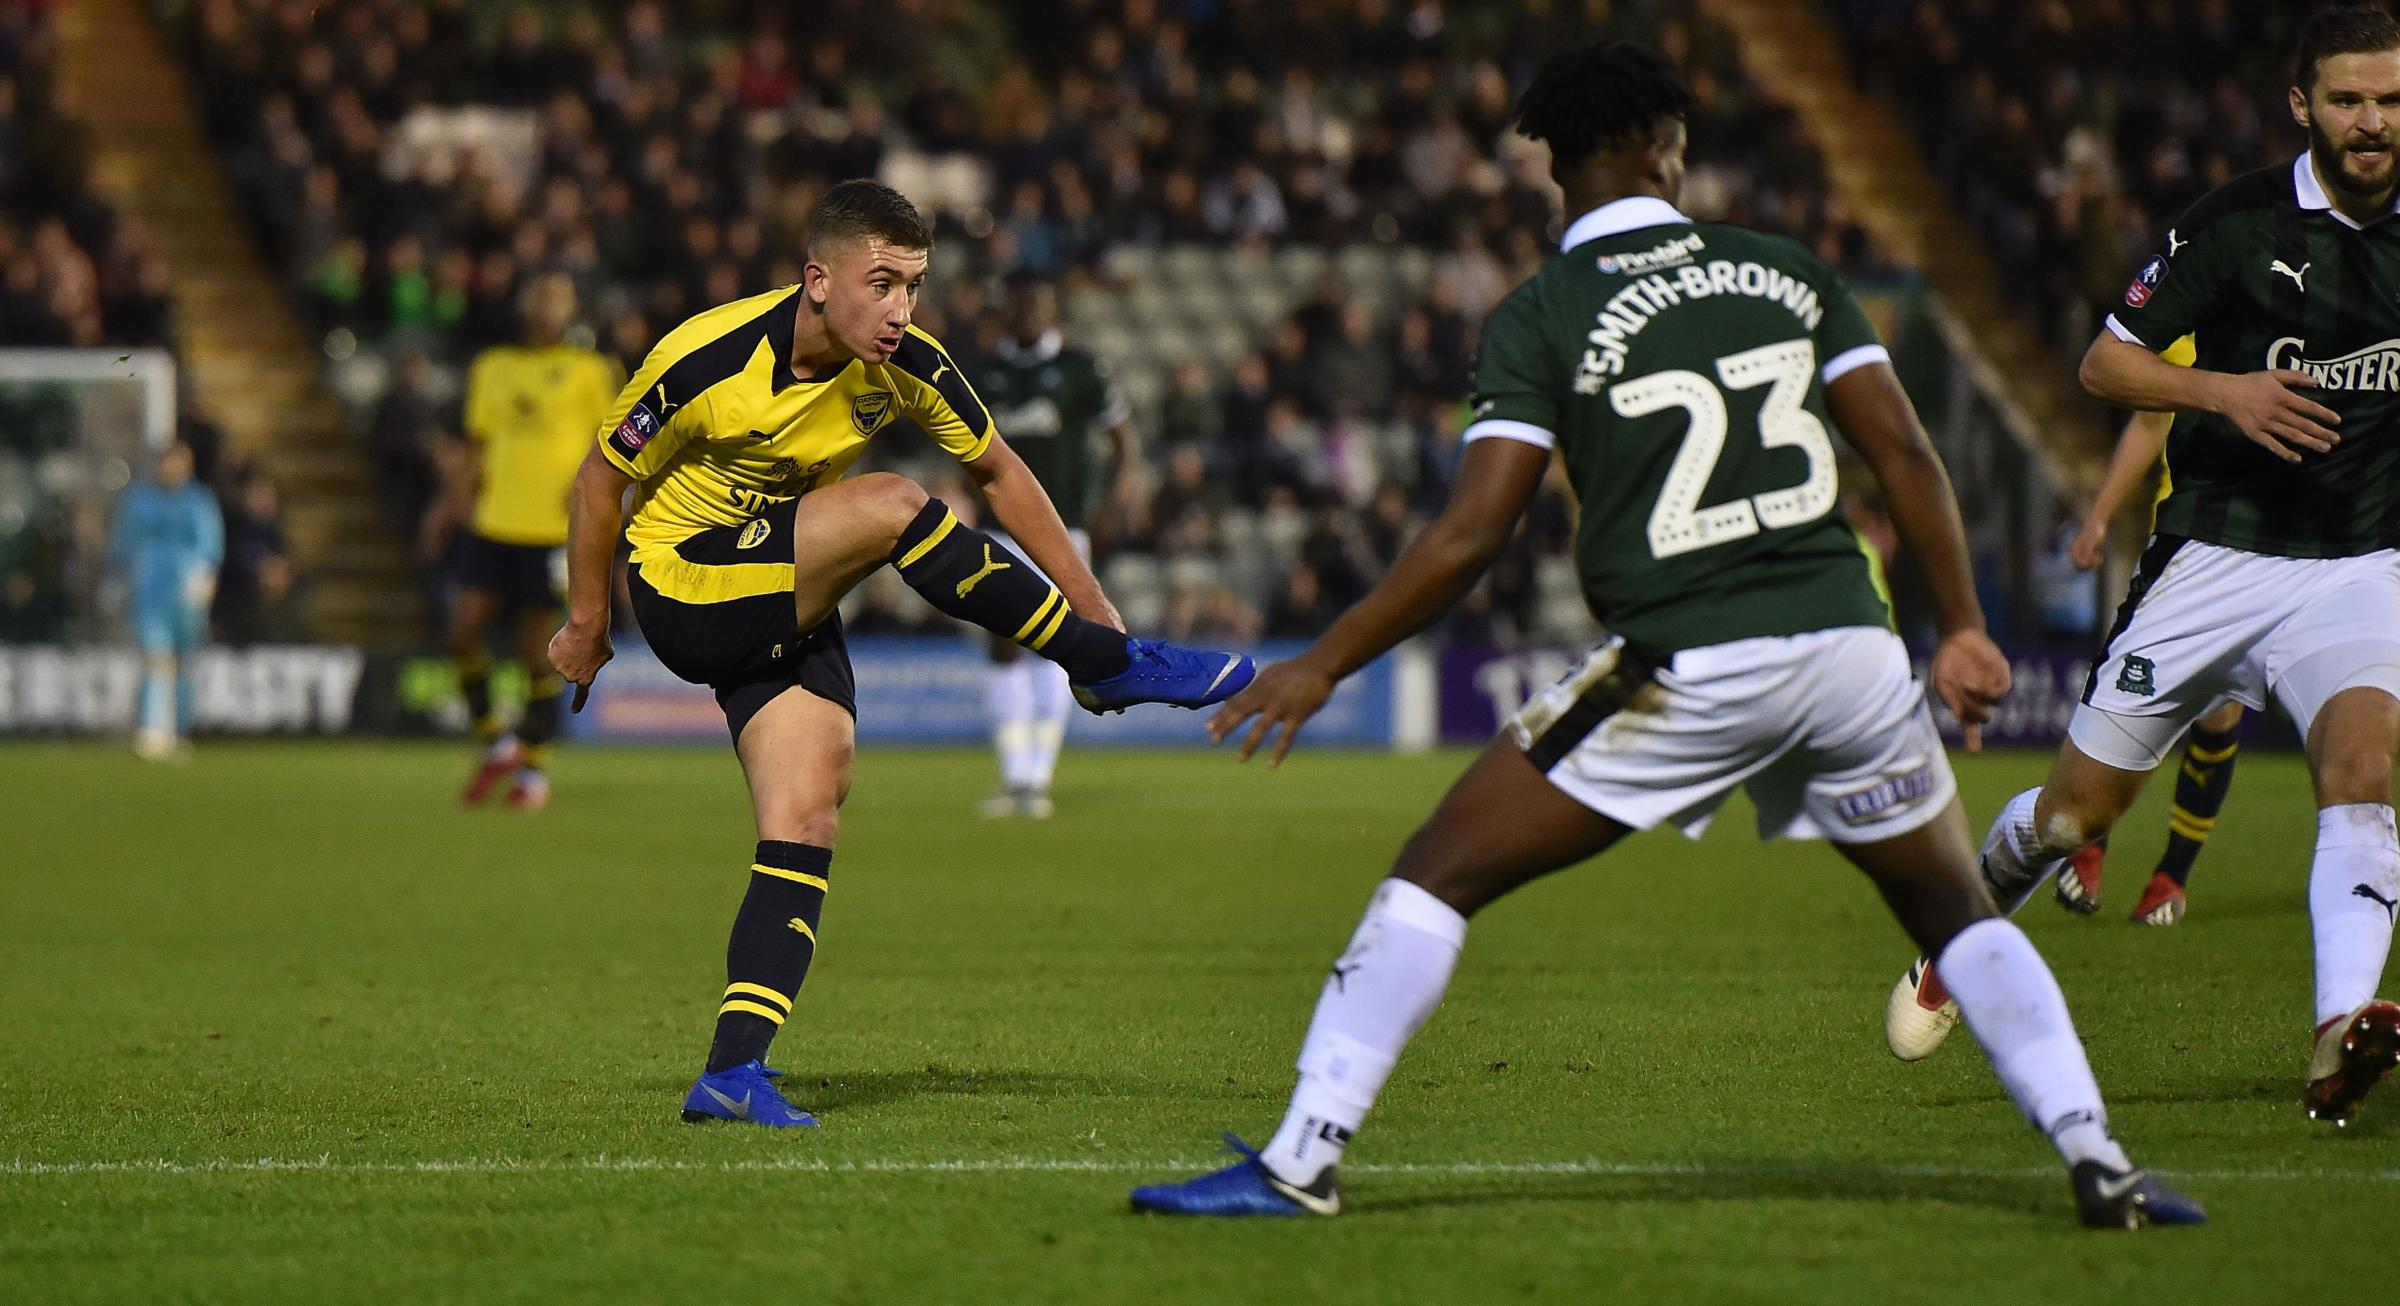 Cameron Brannagan lets fly with a 20-yard rocket for Oxford United's second goal against Plymouth Argyle Picture:  Harry Price/PPAUK